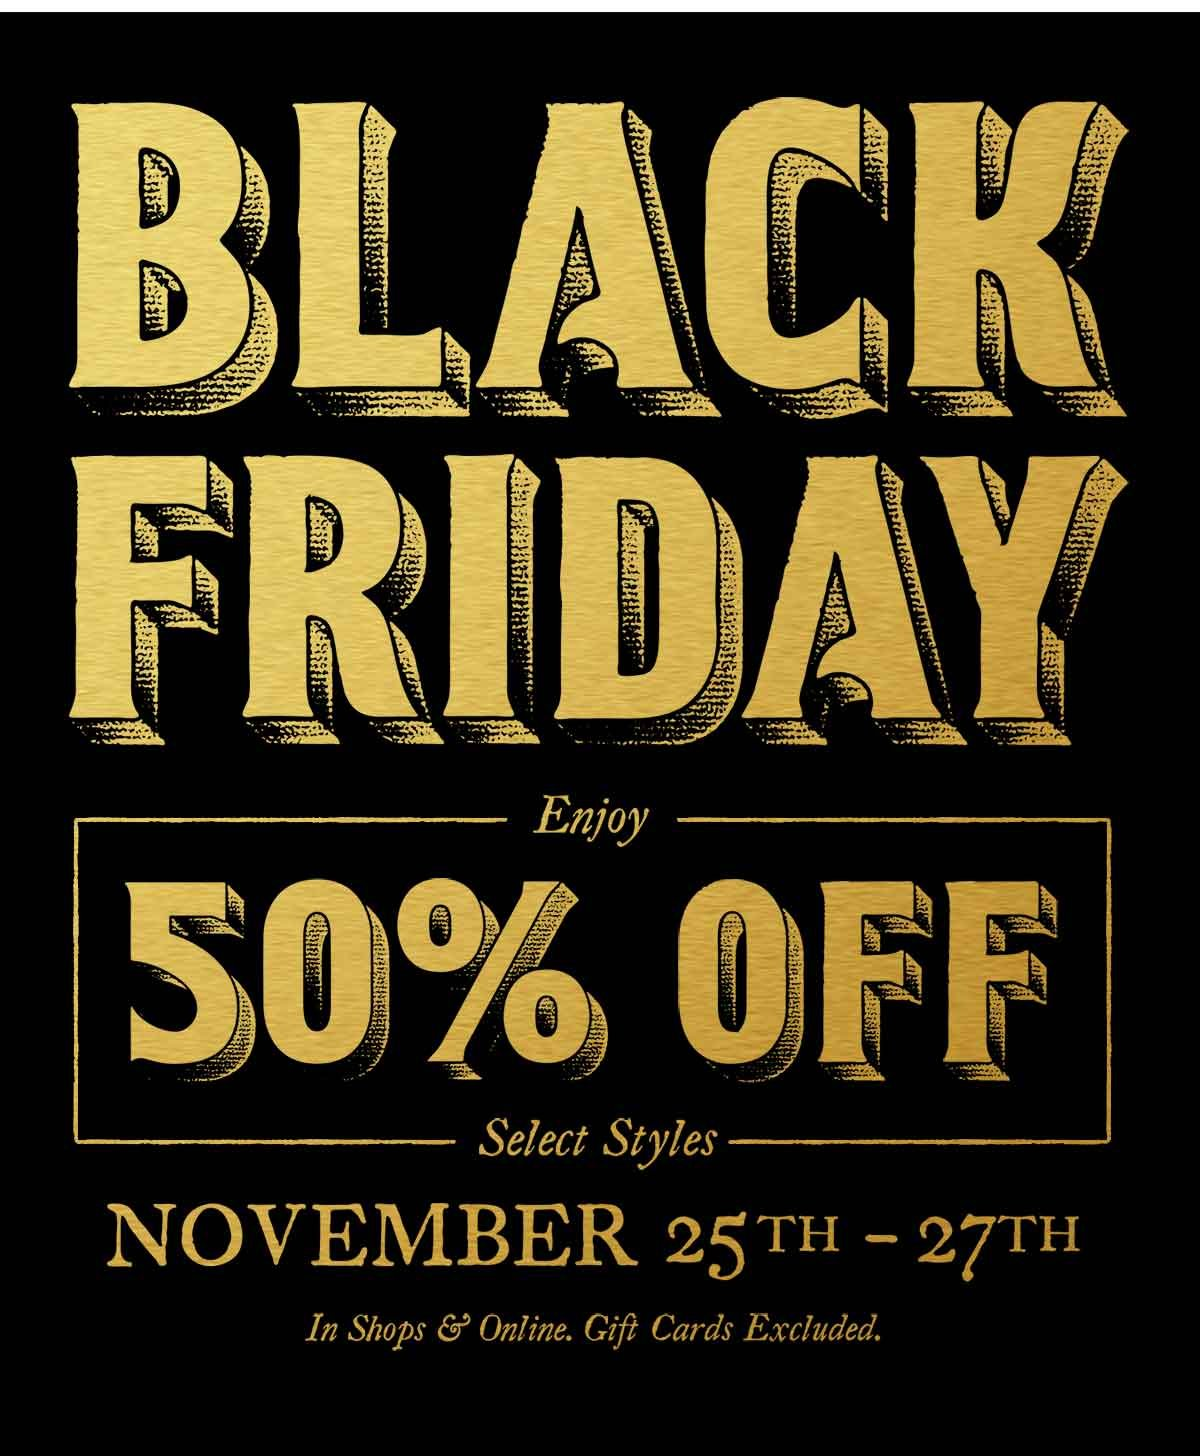 BLACK FRIDAY - Enjoy 50% Off select styles. November 25th - 27th. In f7e51566f54